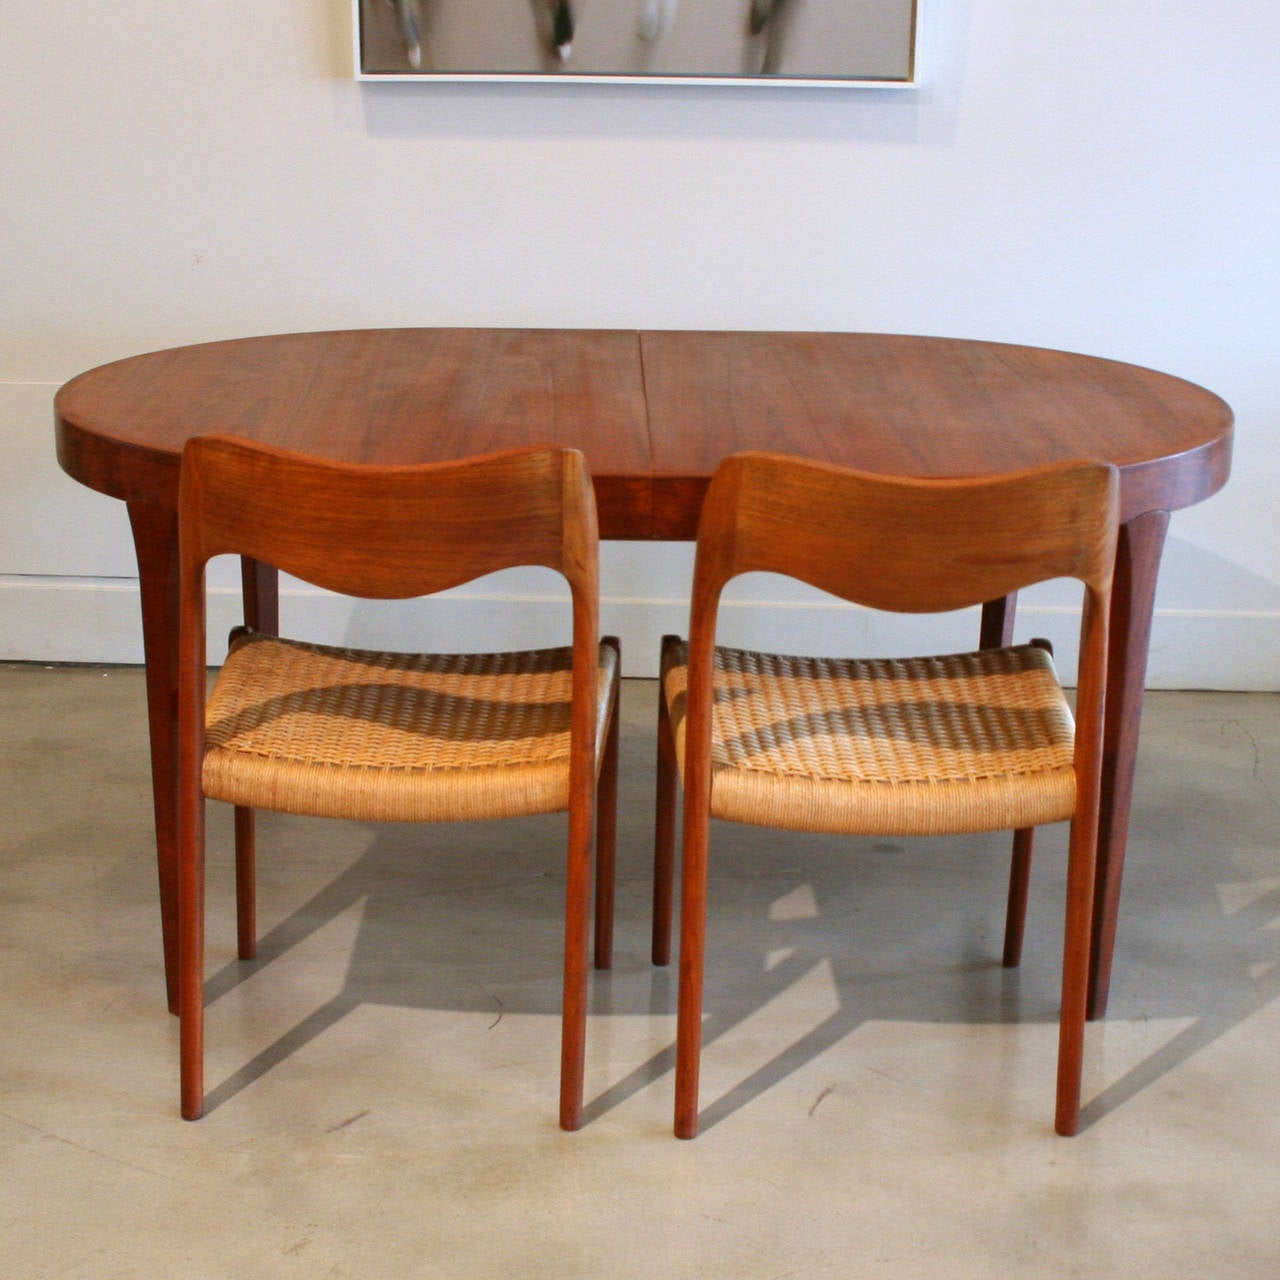 this vintage danish oval teak dining table is no longer available